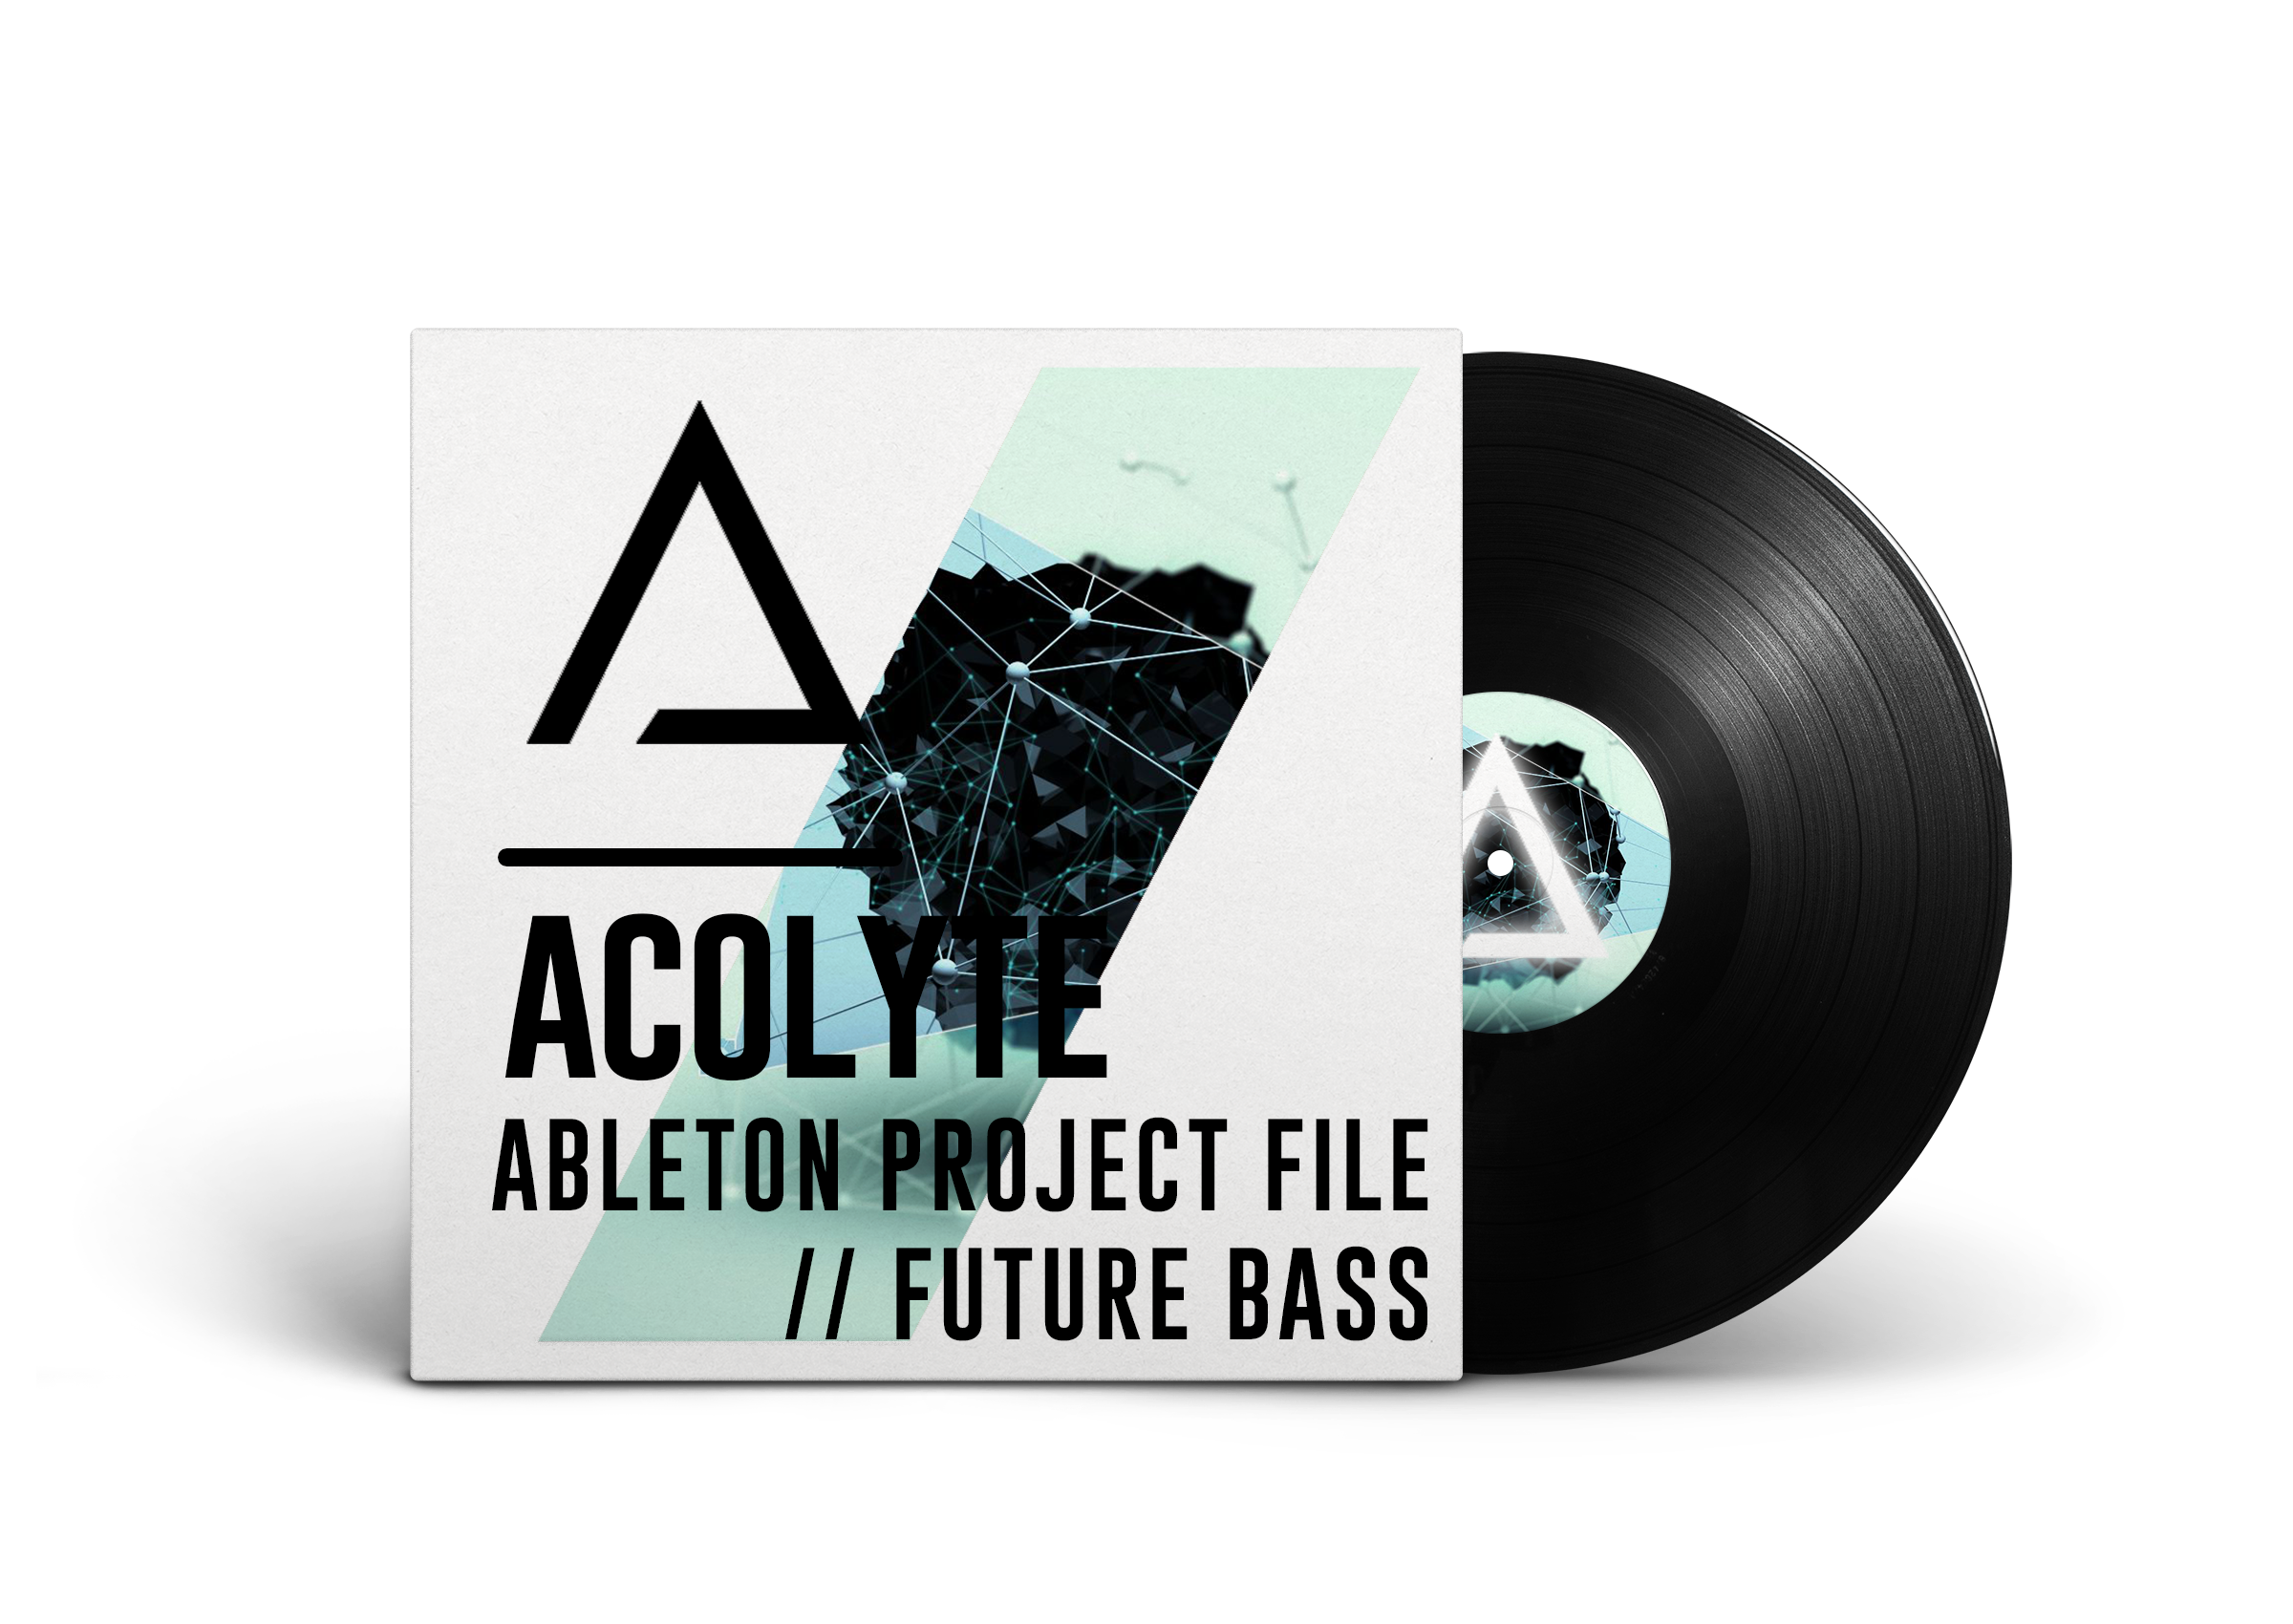 Future bass png. Ableton acolyte audio